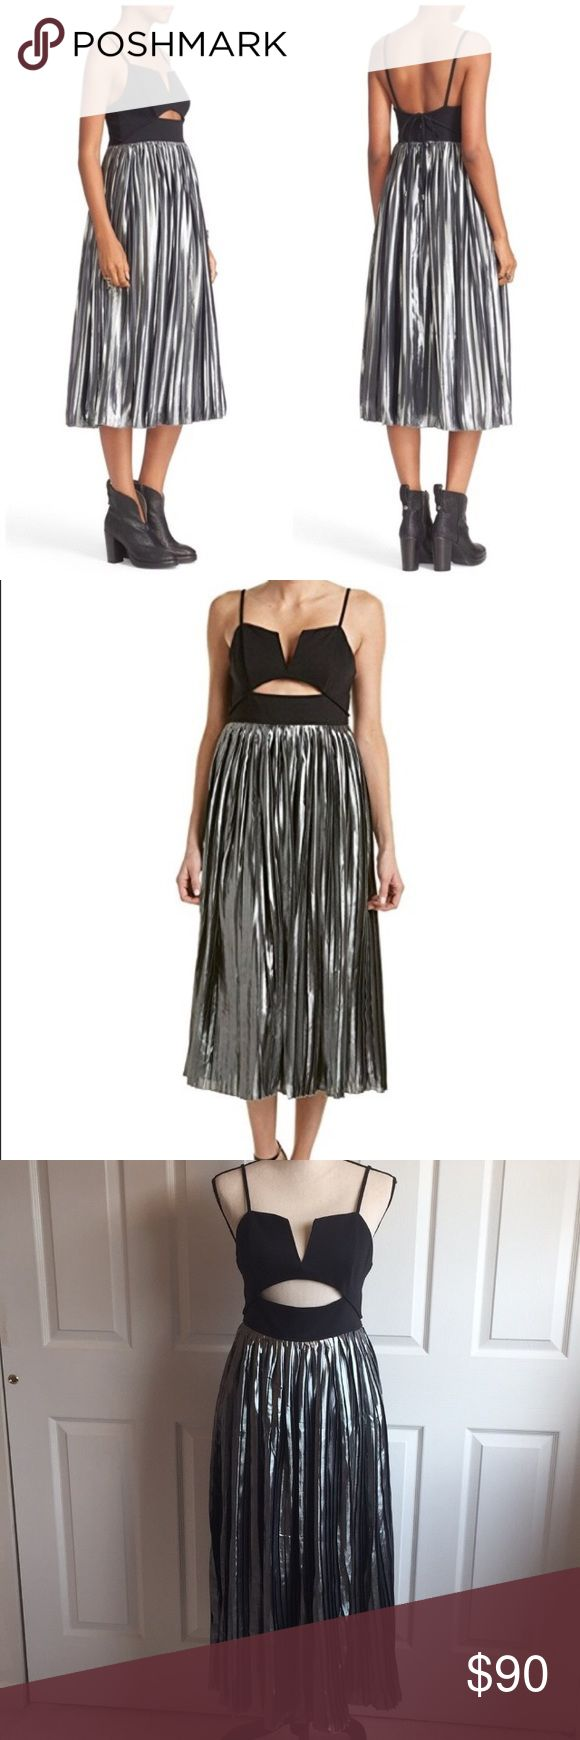 """Free People Piper Dress Free People Piper Pleated Dress in Black and Silver. So glamorous and party ready. Shows off shoulders with a cut out bodice. Accordion pleated skirt part. Hidden back zipper closure. Partially lined. Nylon/ Cotton/ Spandex. Bust;35"""". Wait: 26"""". Height: 5'11"""". Hips: 36"""". New with tags. Free People Dresses Midi"""